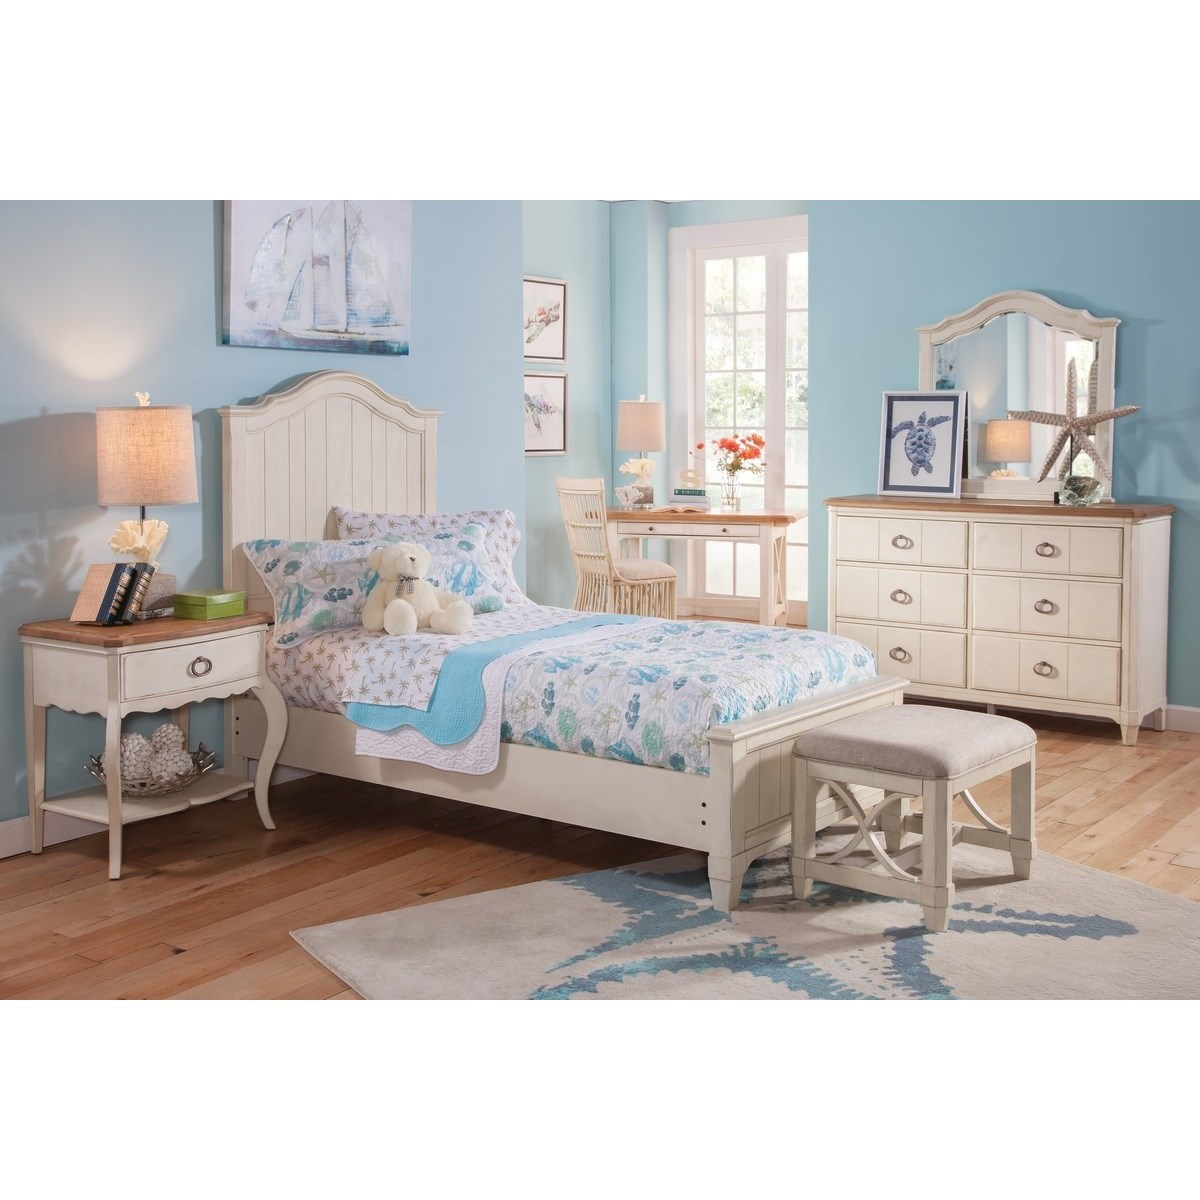 Millbrook Twin Bedroom Group by Panama Jack by Palmetto Home at Baer's Furniture